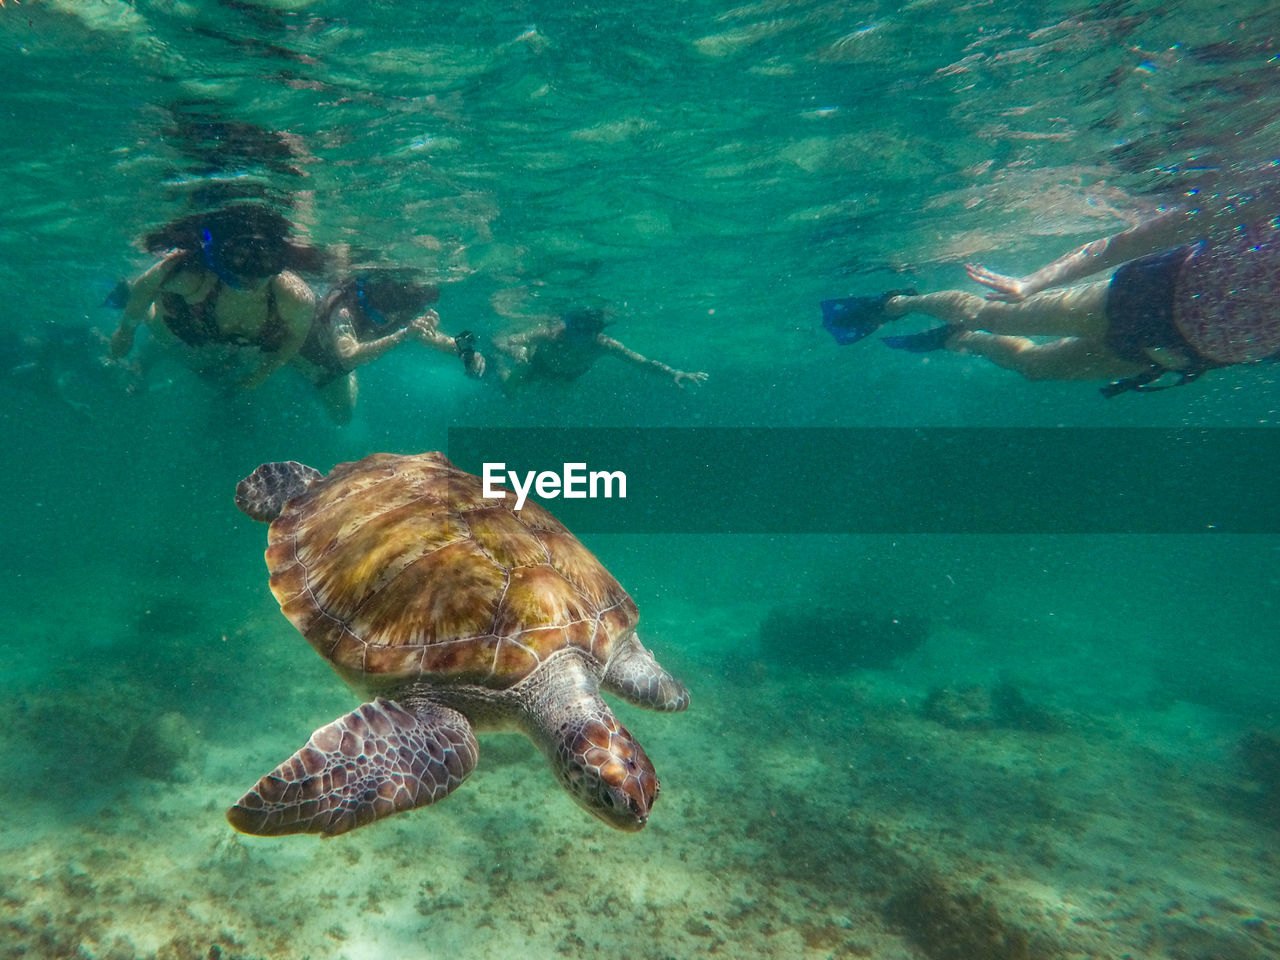 sea, underwater, swimming, water, animal wildlife, turtle, undersea, sea life, animal themes, animals in the wild, nature, animal, marine, reptile, sea turtle, vertebrate, group of animals, day, outdoors, turquoise colored